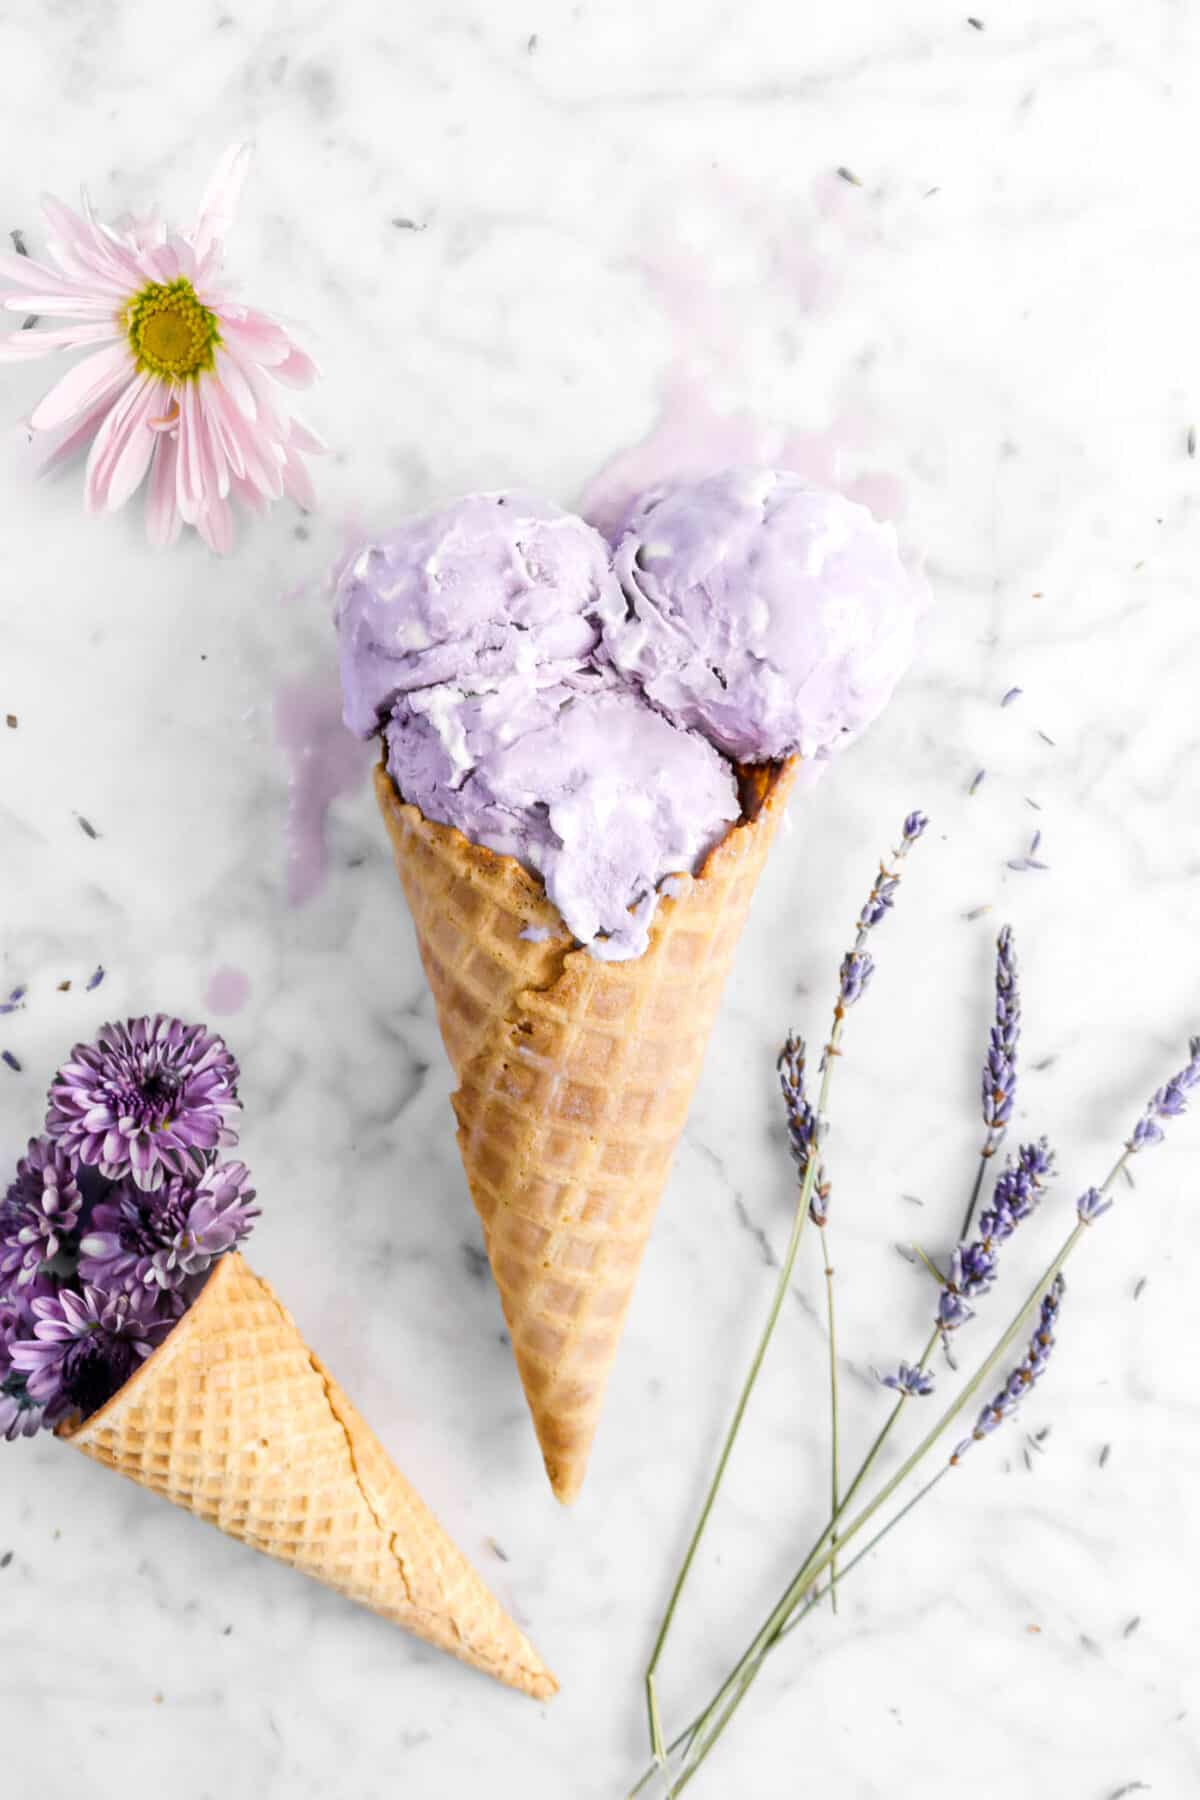 three scoops of ice cream in a cone with purple flowers and lavender